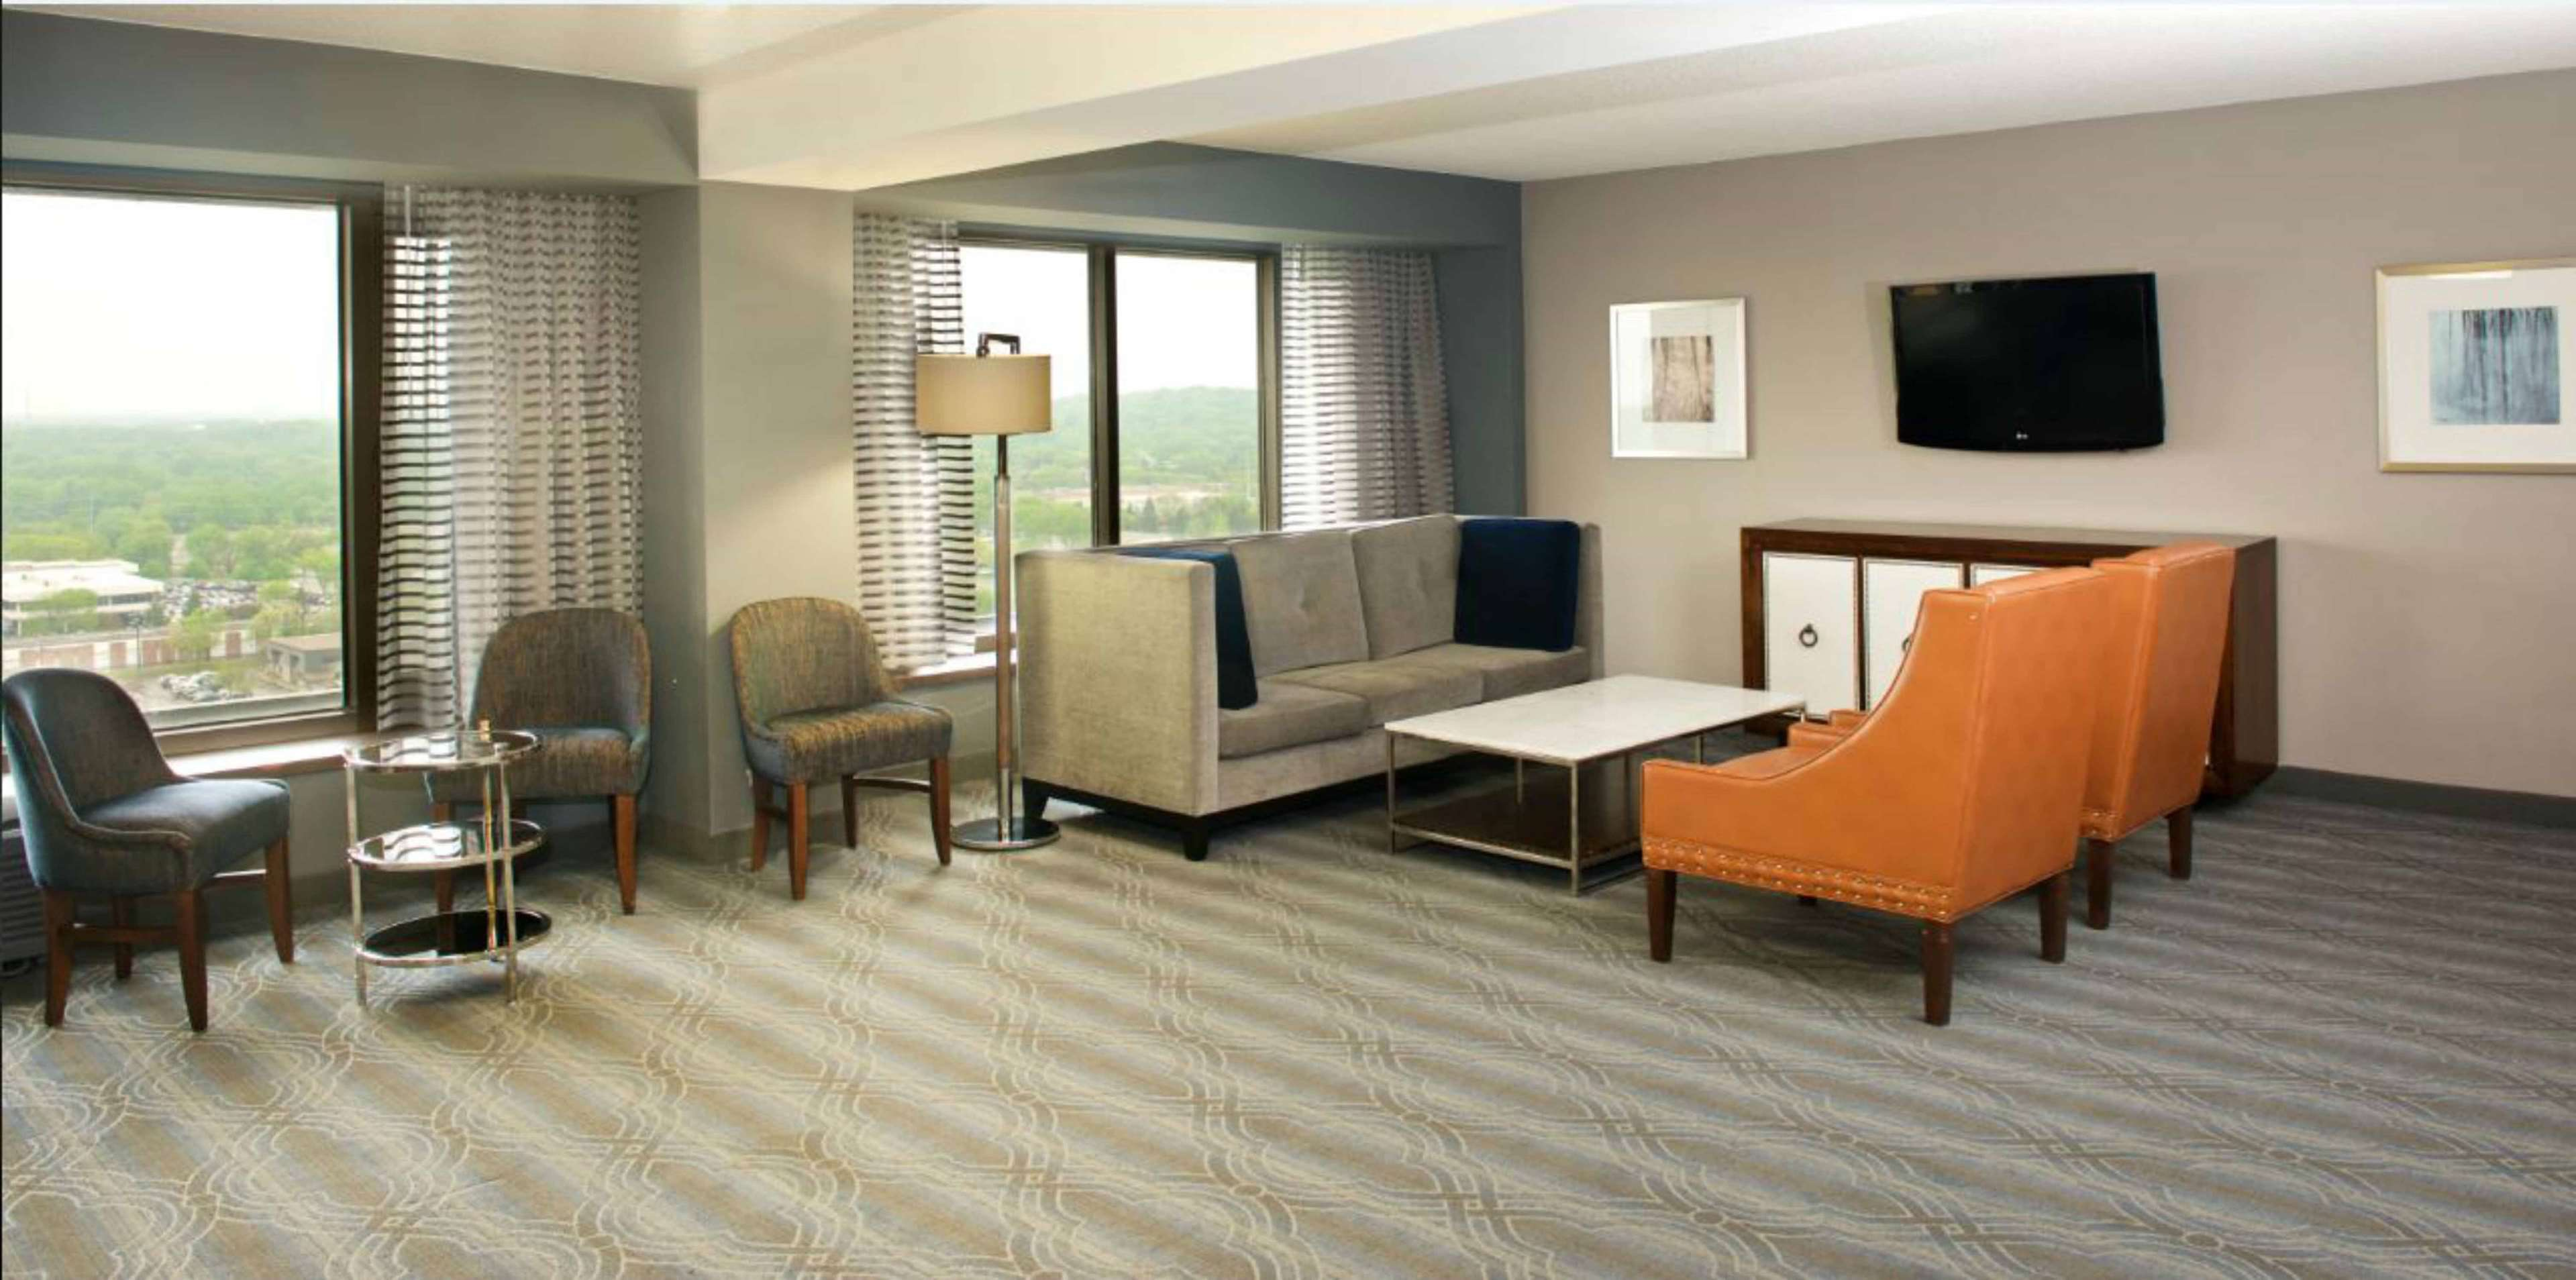 DoubleTree by Hilton Hotel Bloomington - Minneapolis South image 19